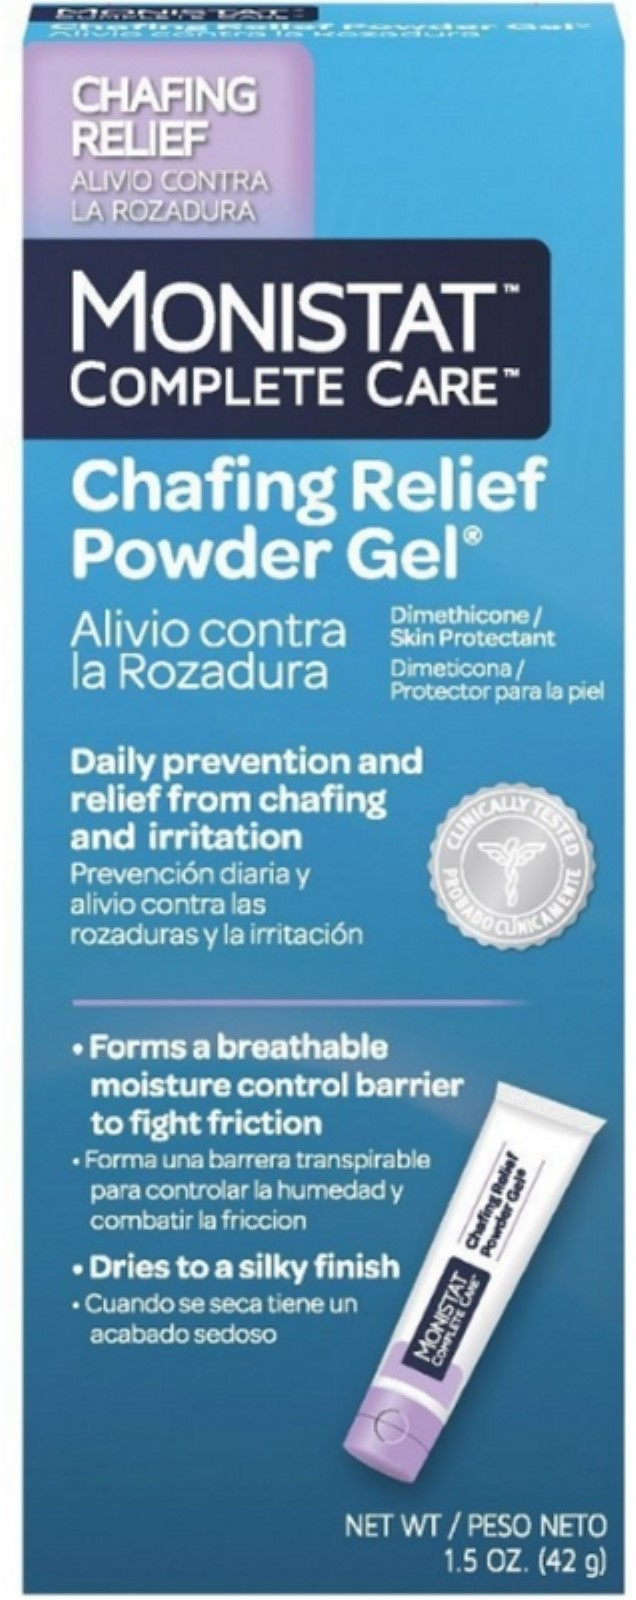 Monistat 7 Health Buy Online From Chafing Relief Powder Gel